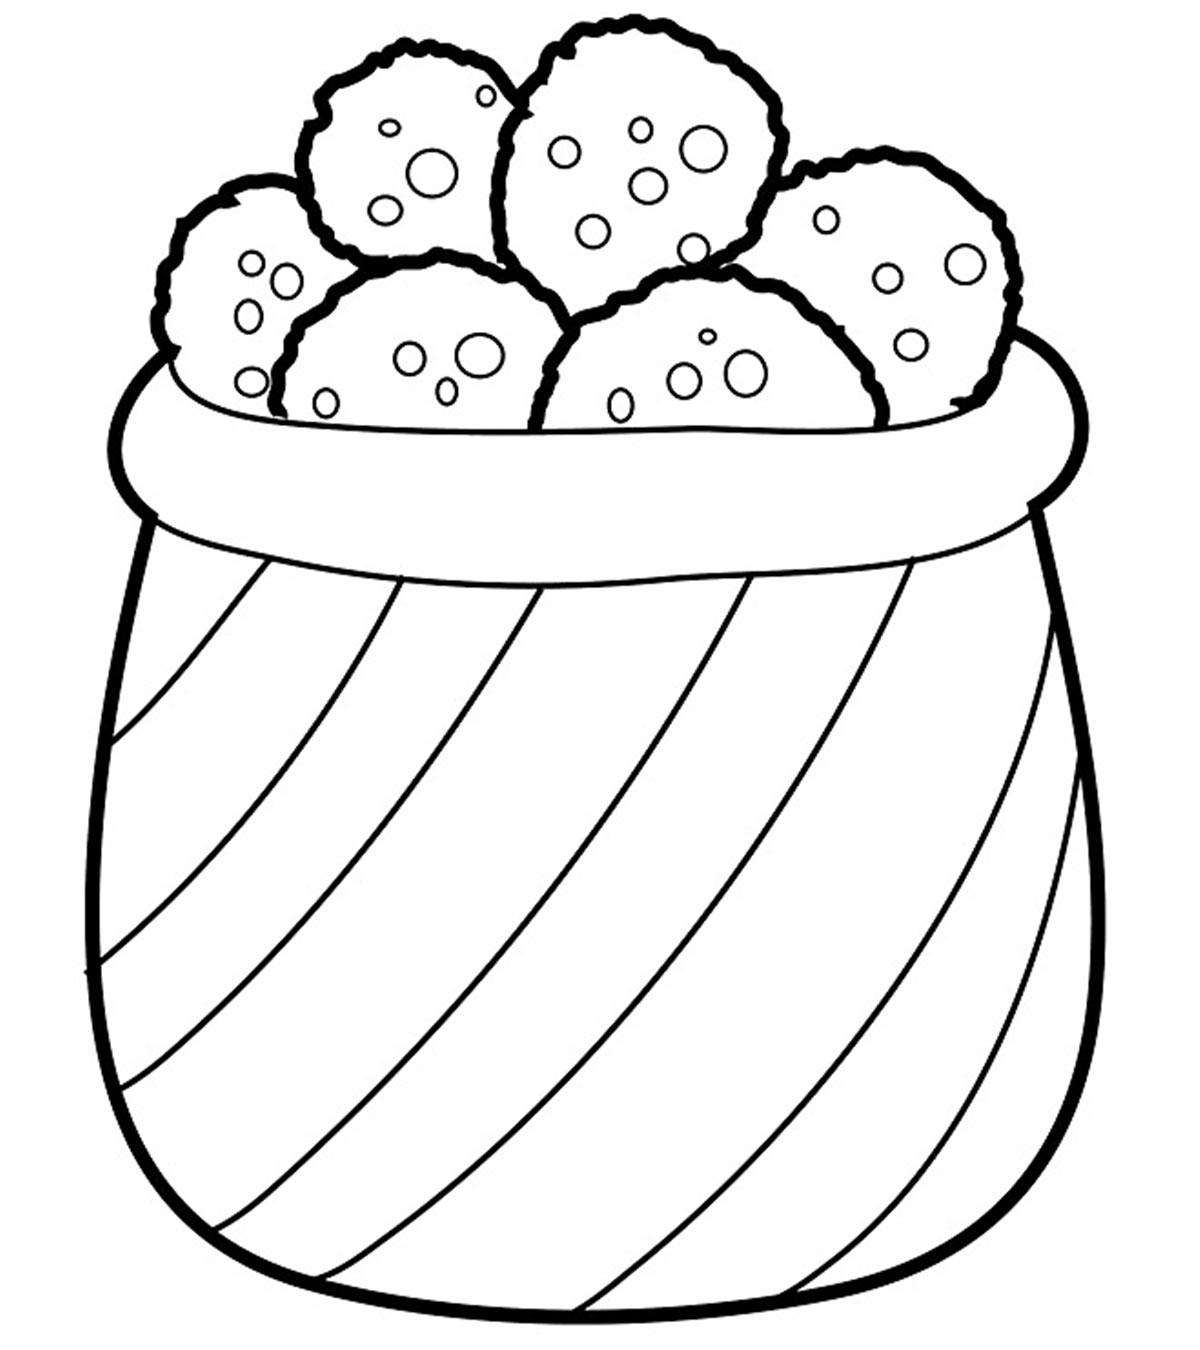 Yummy Cookies Coloring Pages For Your Little Ones